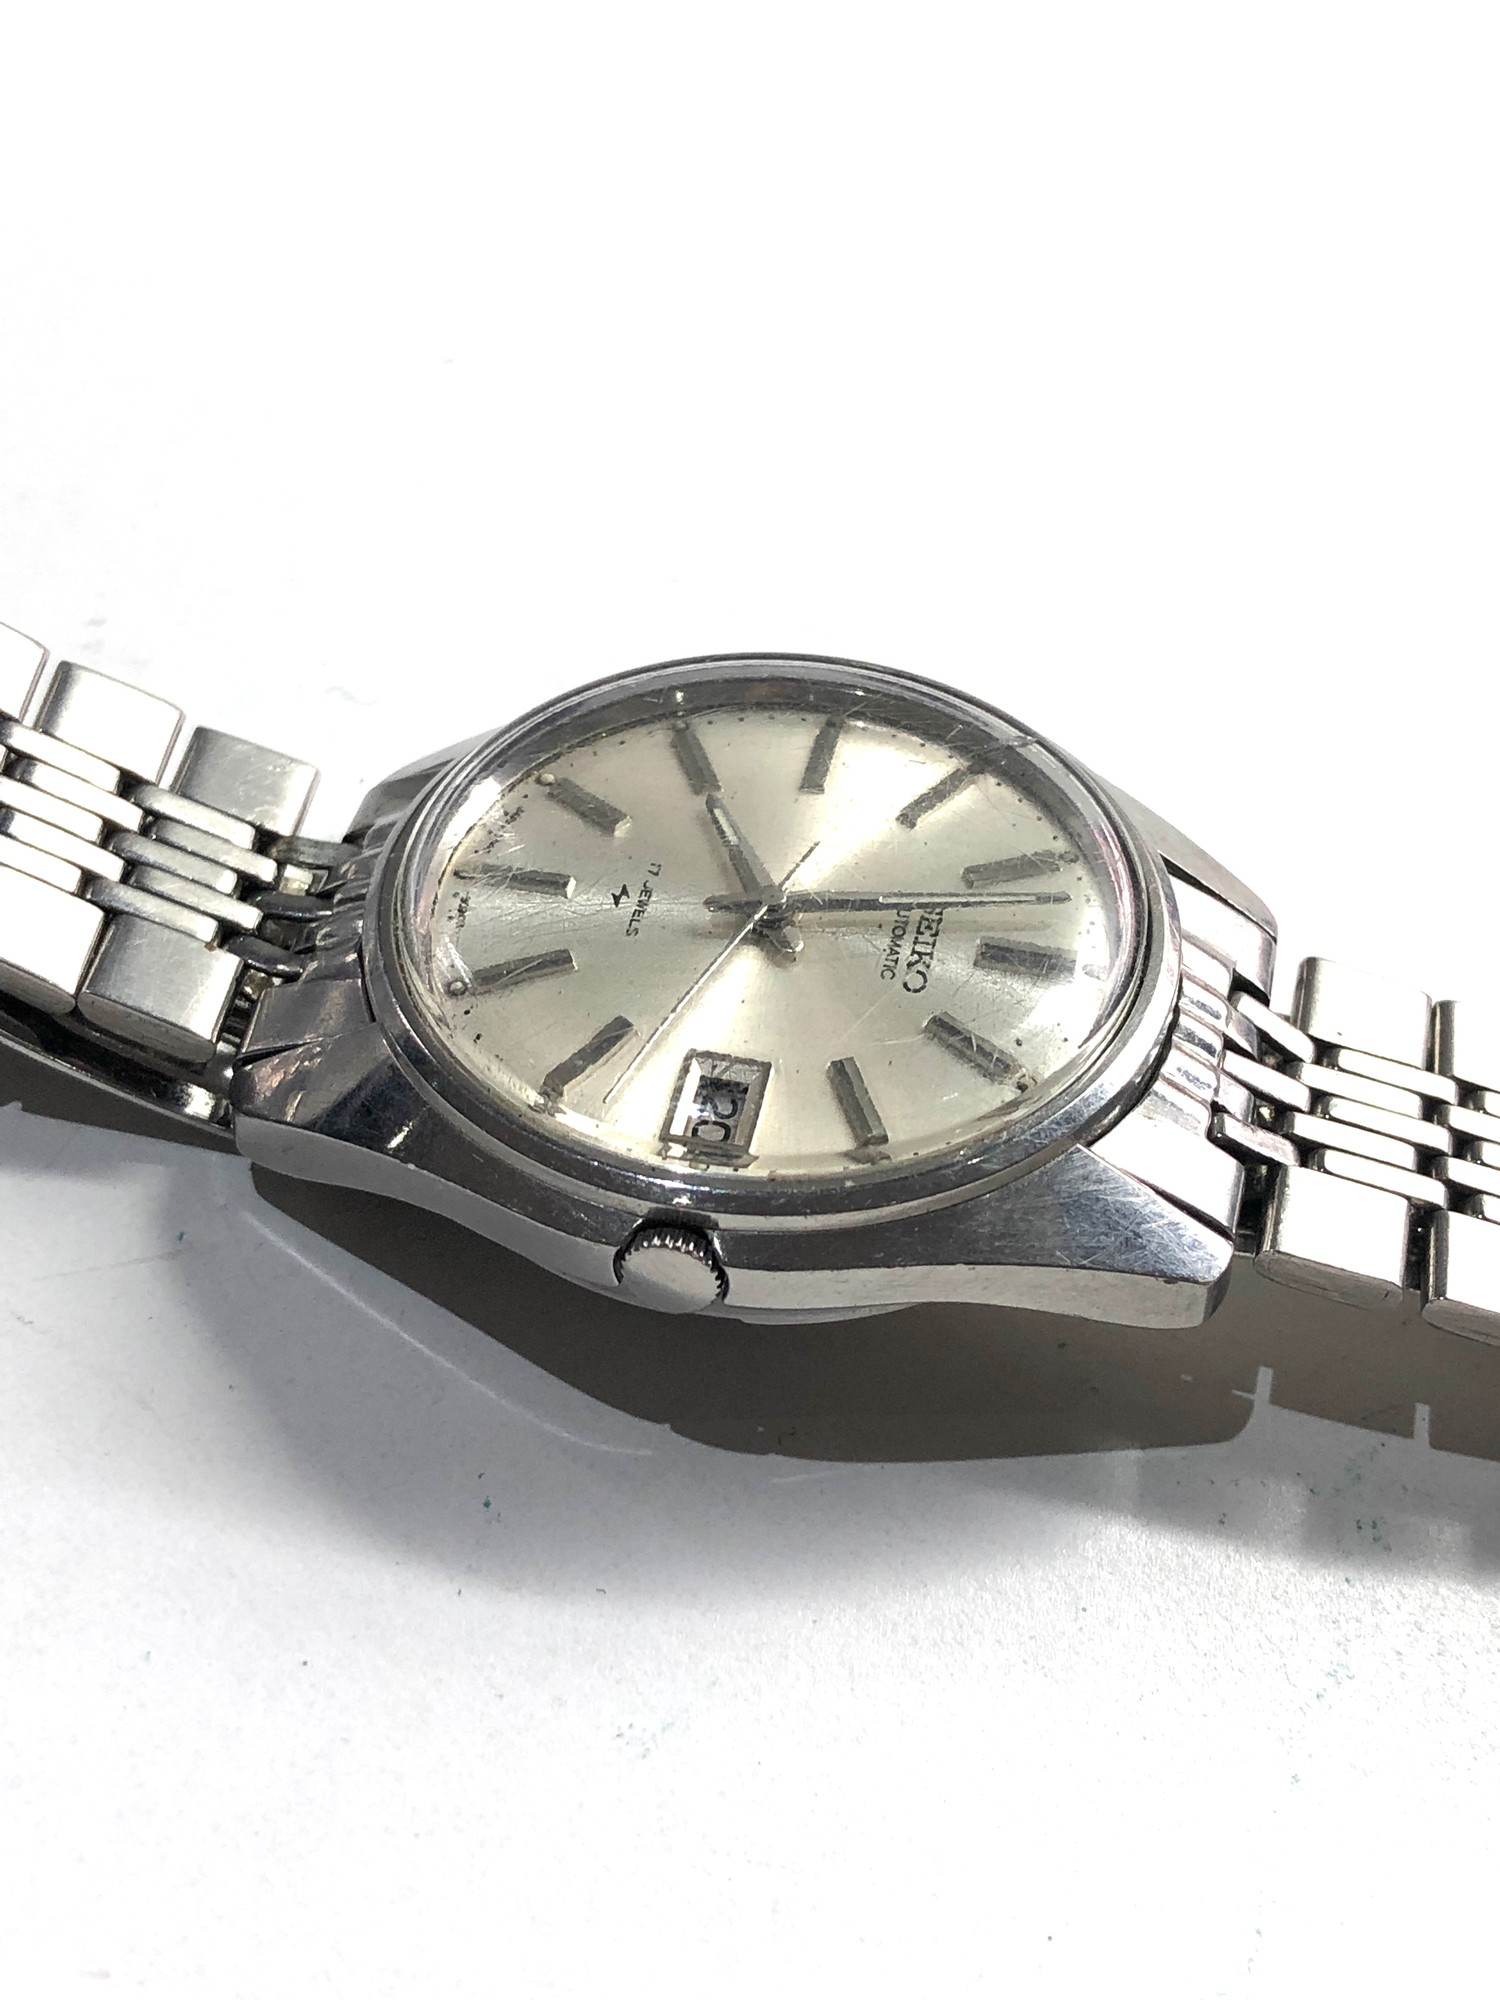 Vintage s-steel 1970's Seiko 7005-8022 classic 17 Jewel automatic Datejust watch working order no - Image 3 of 5